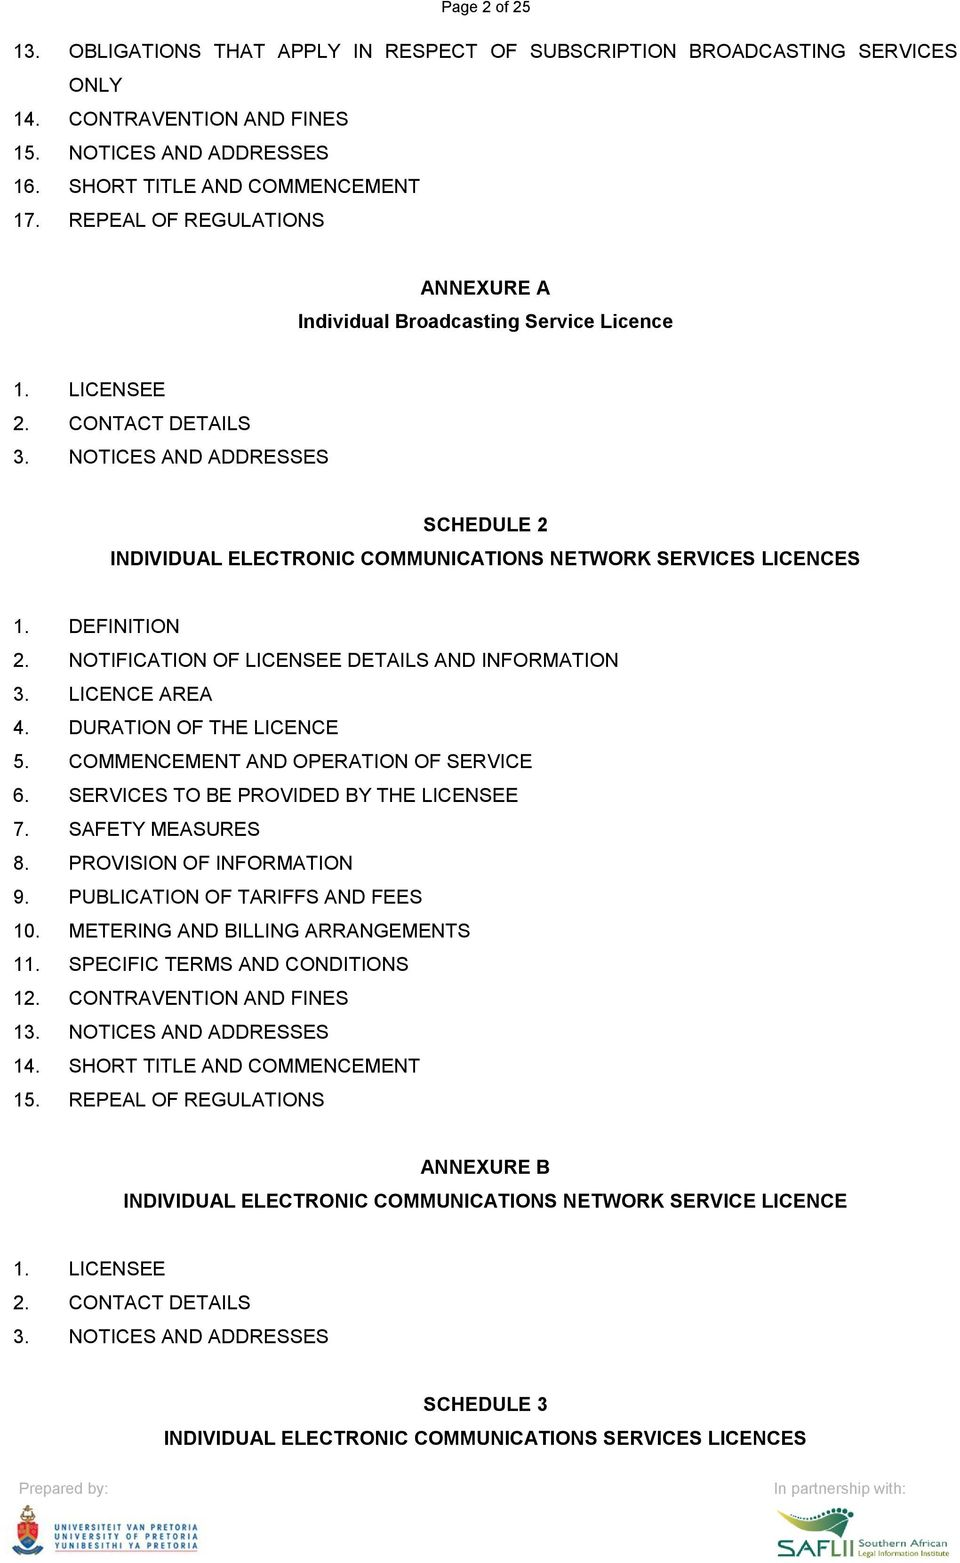 NOTICES AND ADDRESSES SCHEDULE 2 INDIVIDUAL ELECTRONIC COMMUNICATIONS NETWORK SERVICES LICENCES 1. DEFINITION 2. NOTIFICATION OF LICENSEE DETAILS AND INFORMATION 3. LICENCE AREA 4.